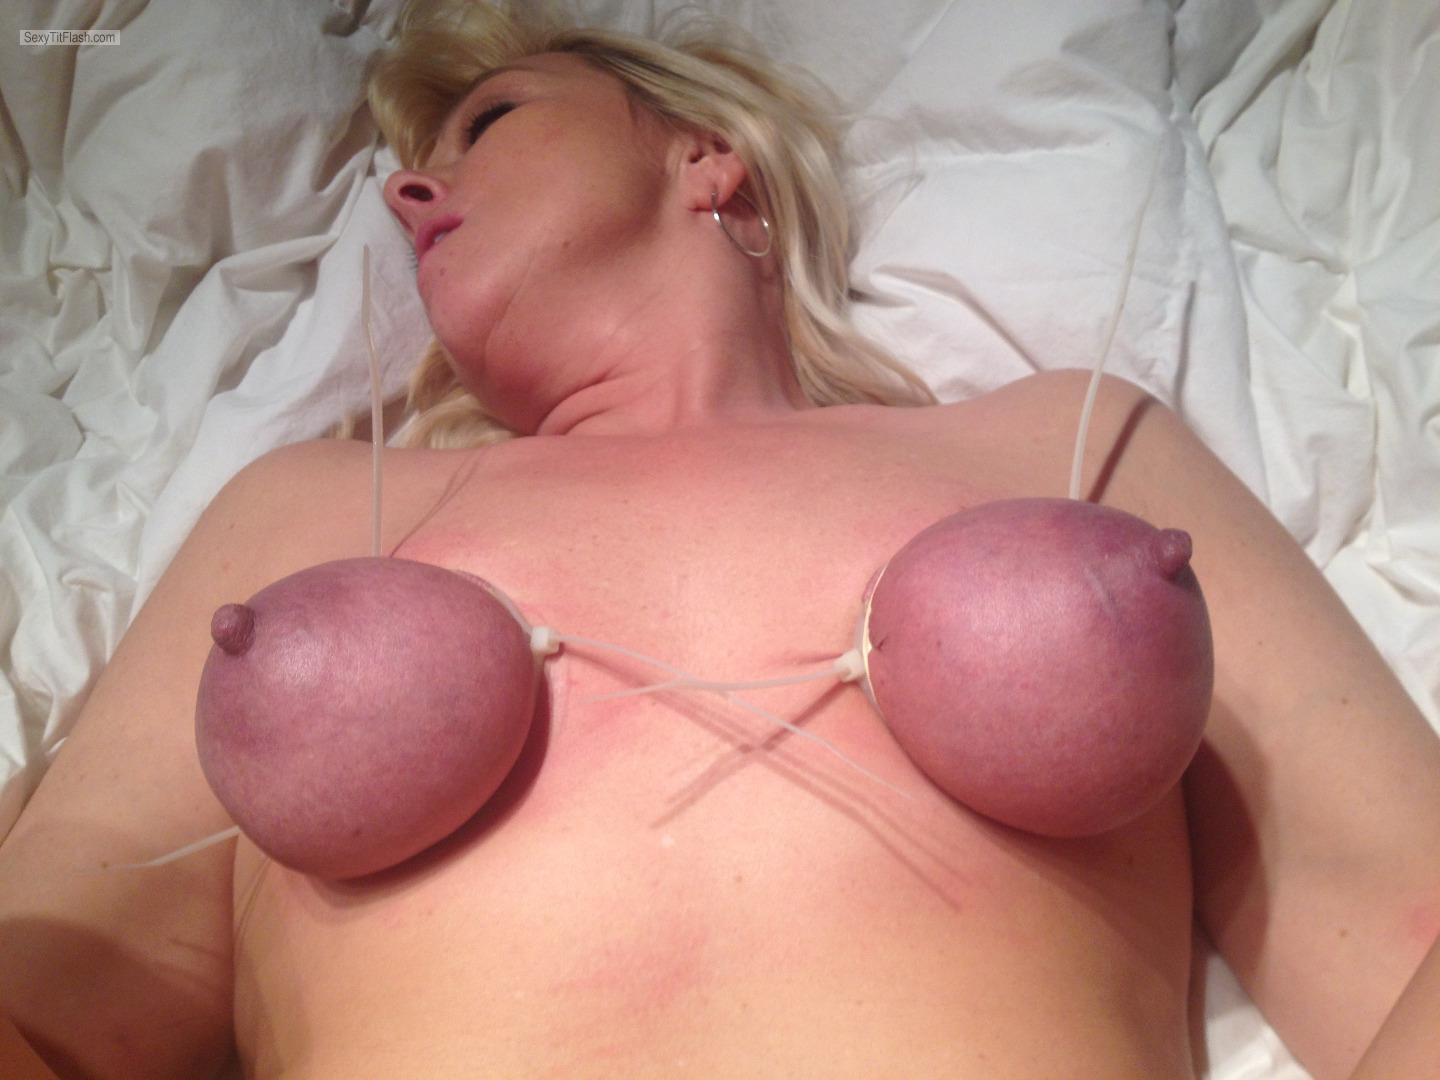 Tit Flash: My Medium Tits - Topless Hotnhonry4u from United States